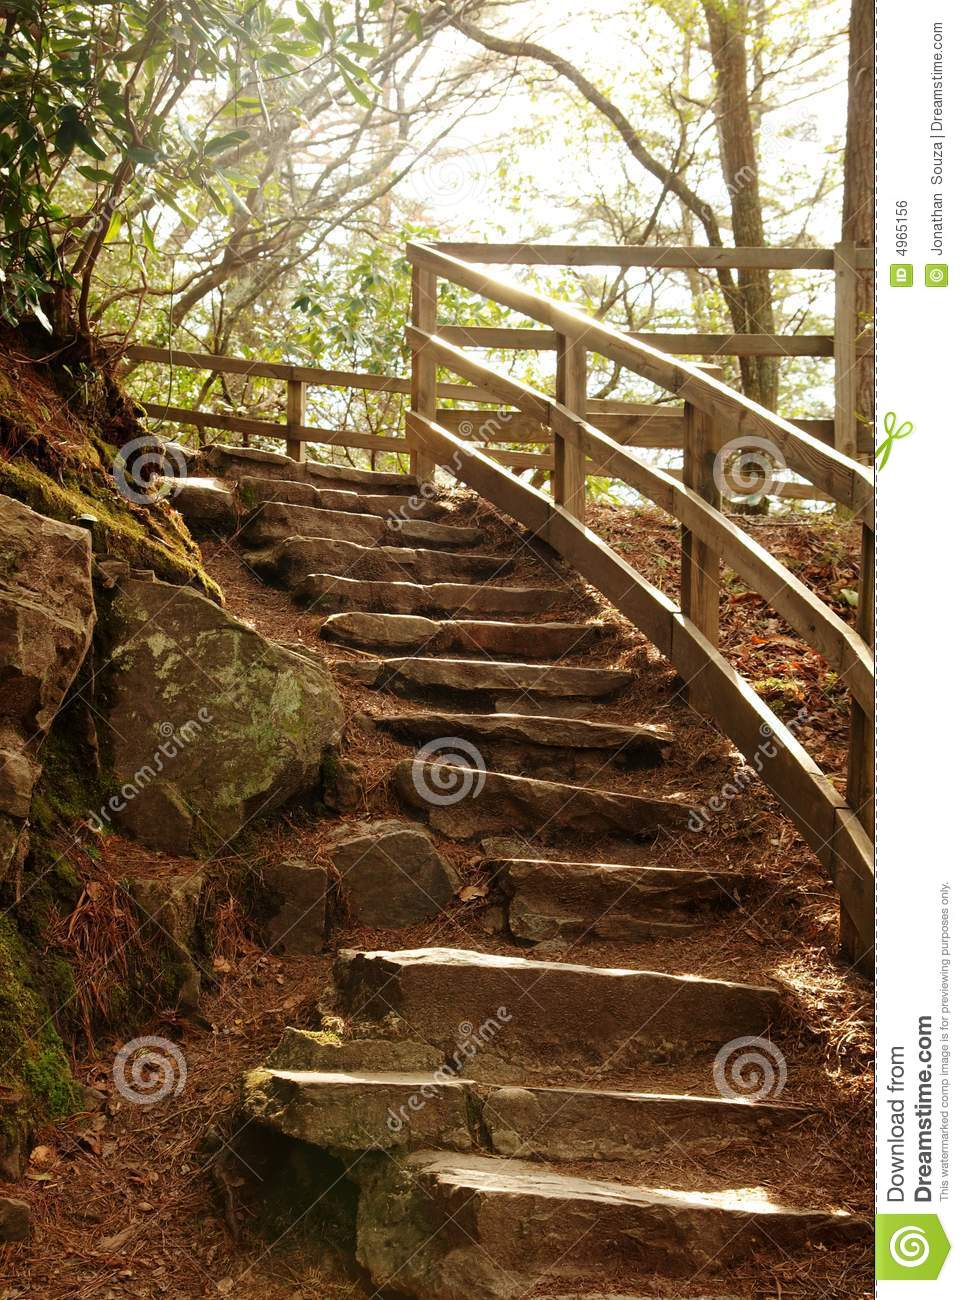 Stone Stair Steps In Nature Forest Stock Photo Image Of